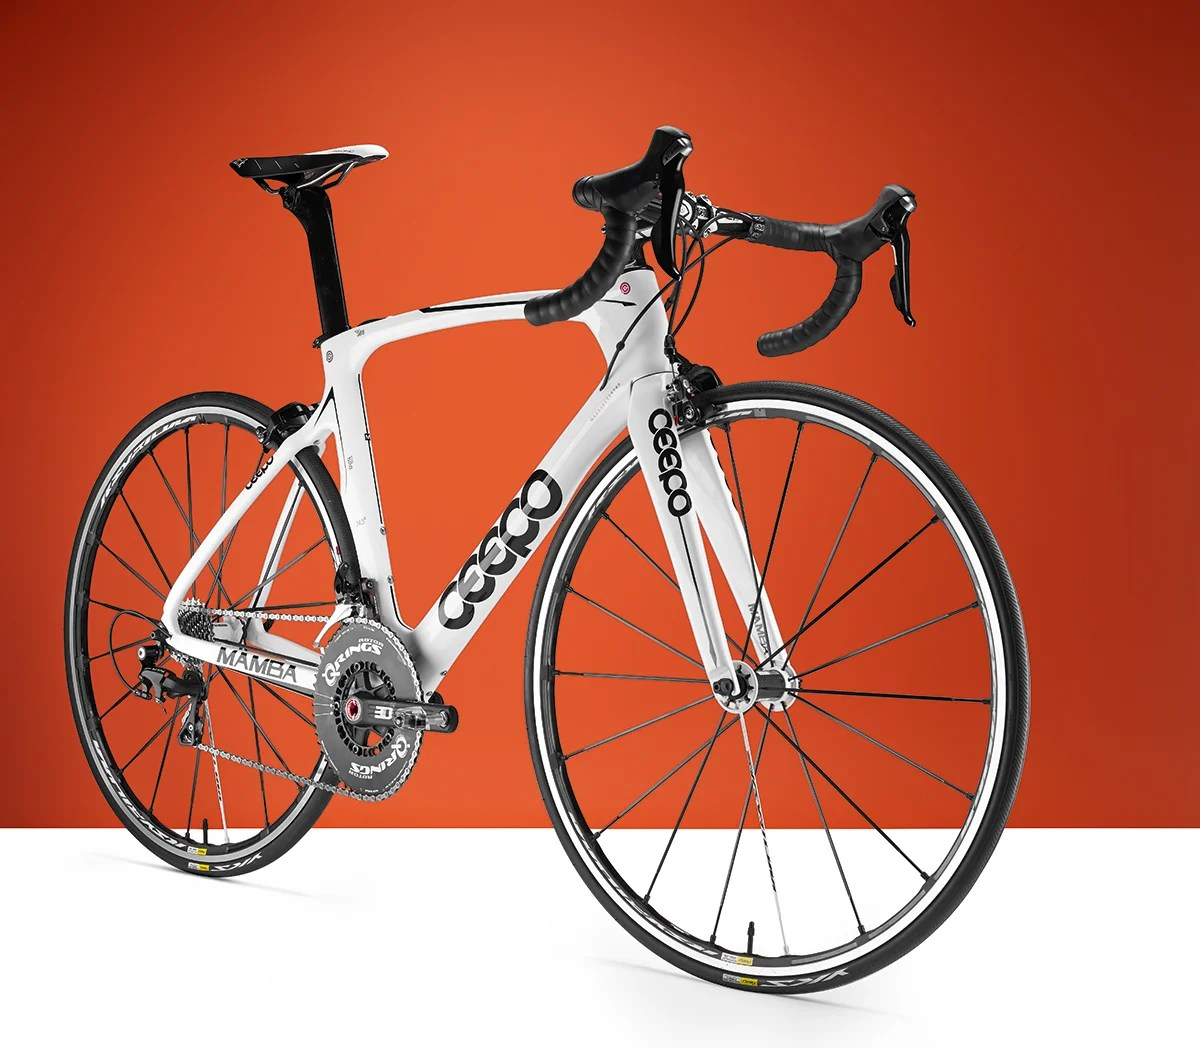 Ceepo Mamba pictures | Cyclist